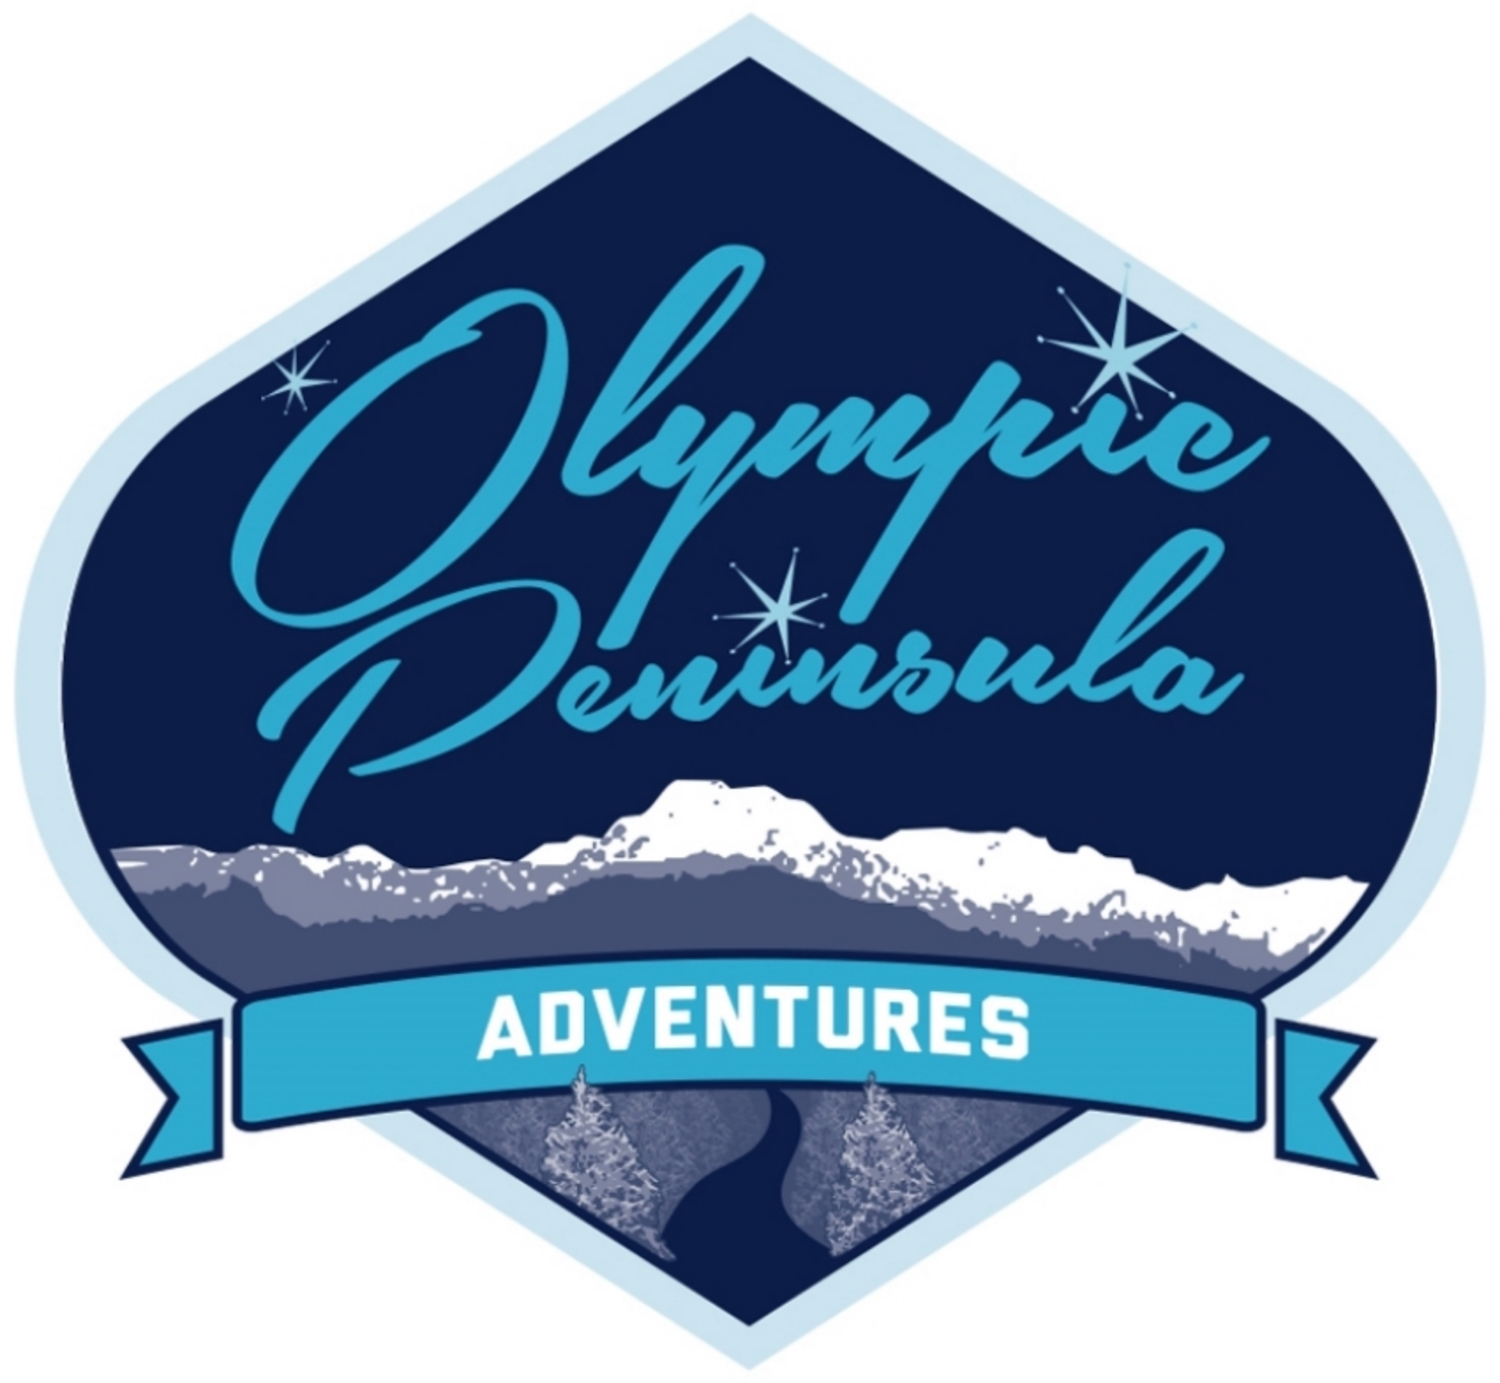 OLYMPIC PENINSULA ADVENTURES